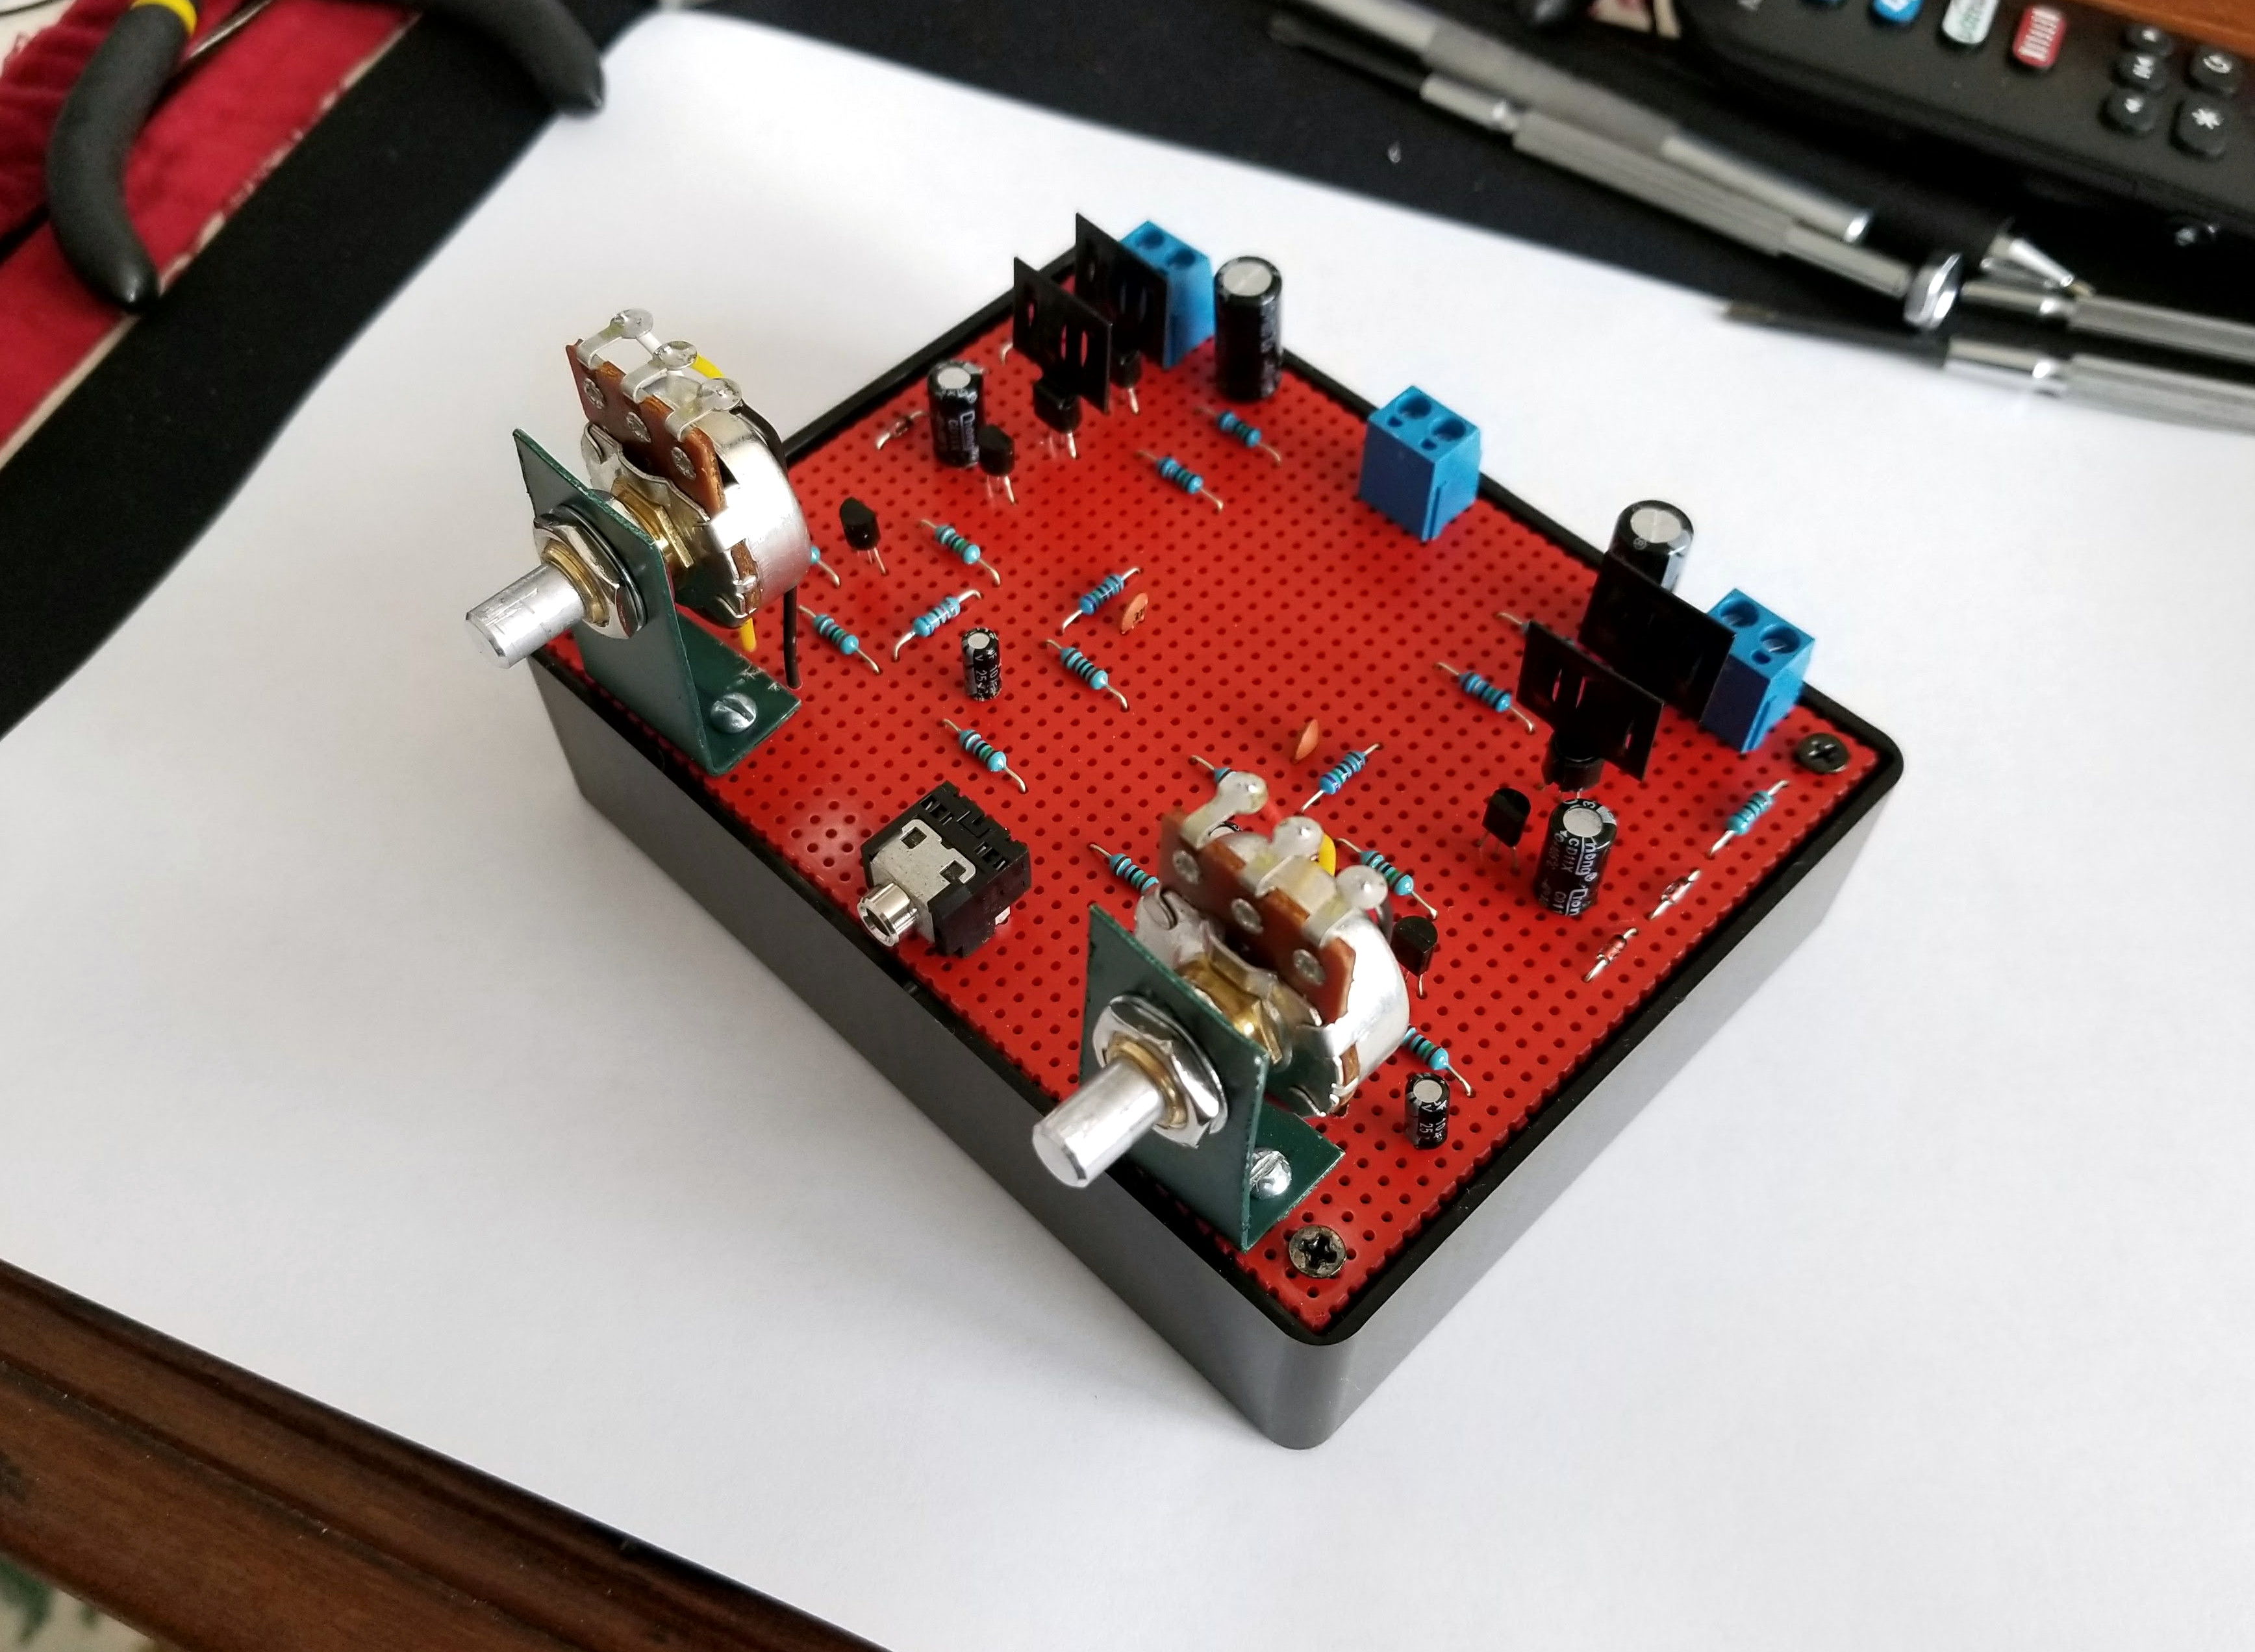 Build This 8 Transistor Stereo Amplifier Cracked Solutions Hifi Audio Circuit Design And The Assembly Manual Covers Setup Operation Of Along With Some Modifications You Can Make To Double Output Power If Desired